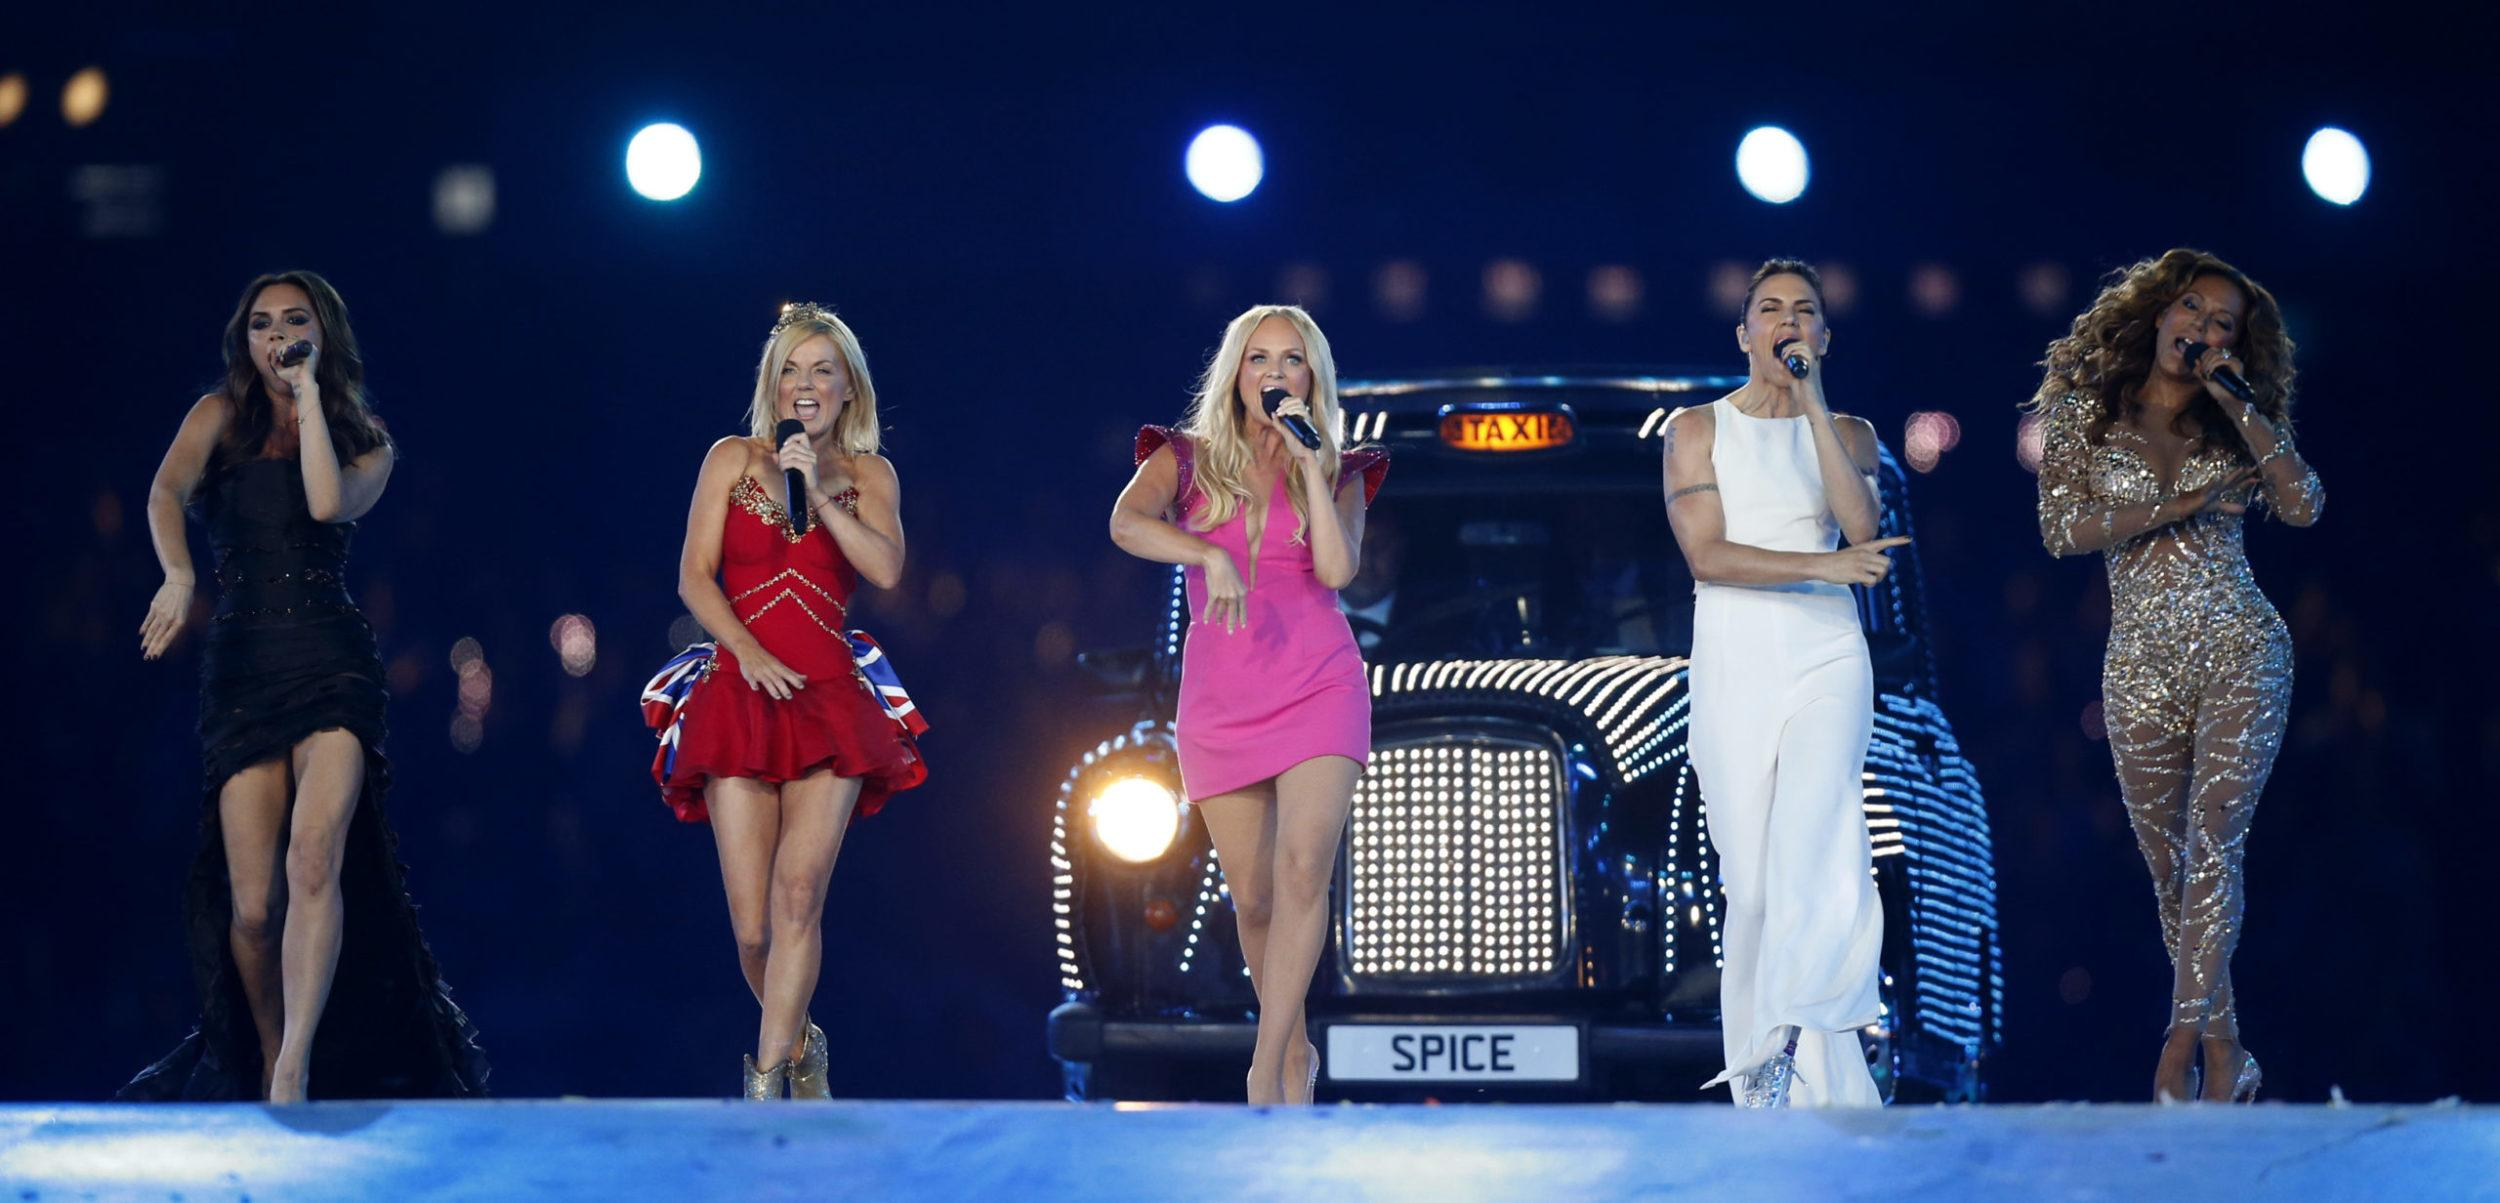 Britain_Spice_Girls_49804-91e2f61fe5c74889bd00cd82c4d415be